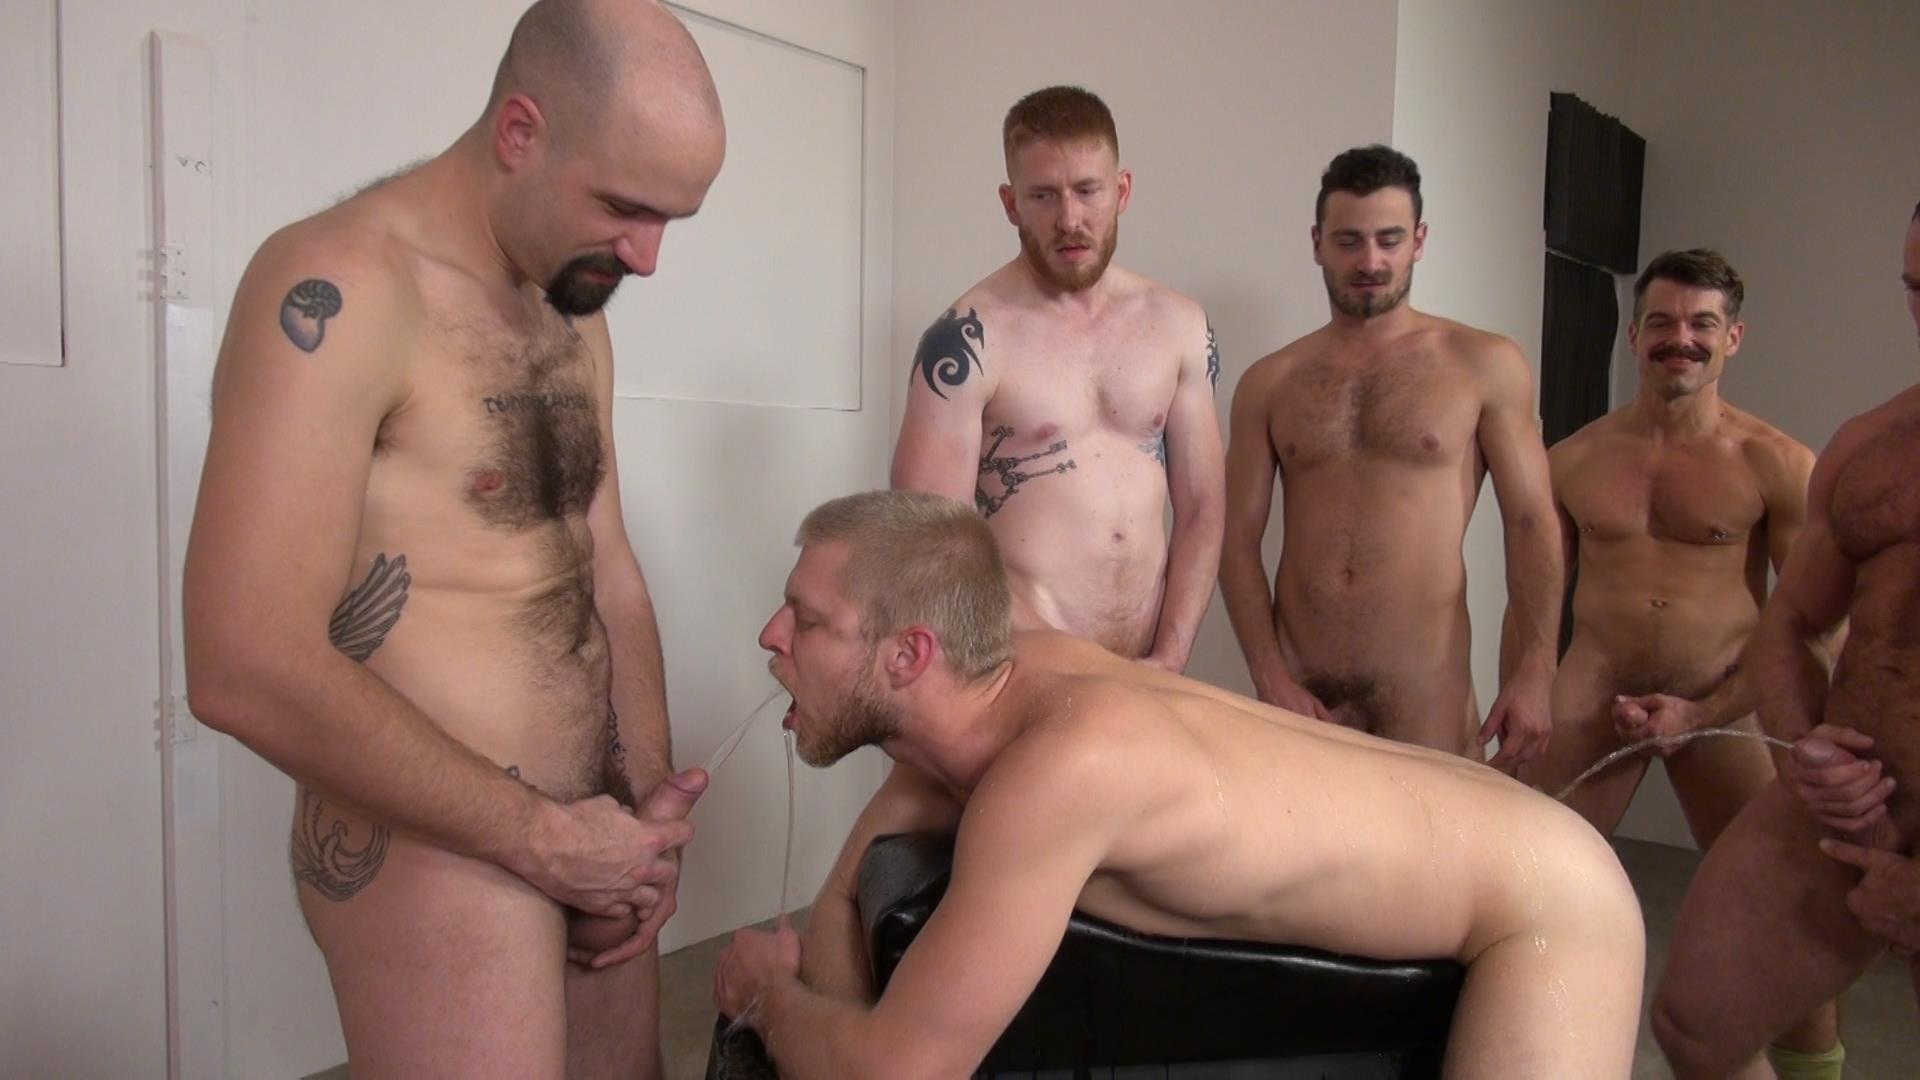 Raw-and-Rough-Bareback-Gay-Sex-Orgy-Amateur-Gay-Porn-08 Six Hairy Hung Guys Pounding A Bottom At A Bareback Sex Party